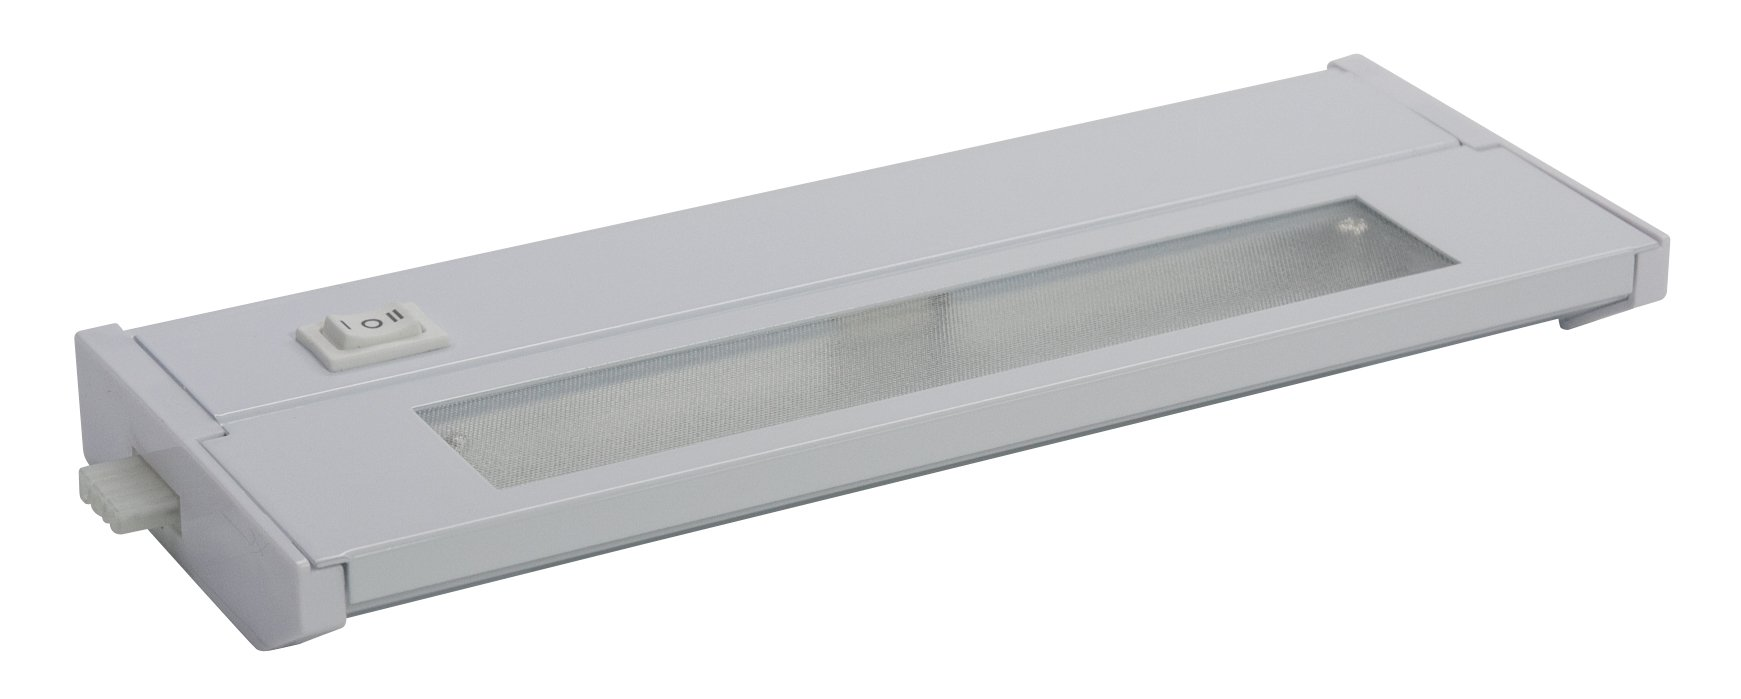 American Lighting 043X-1-WH Priori Xenon Under Cabinet Hardwire Light, 20-Watts, Hi/Low/Off Switch, 120-Volt, 10-Inch, White